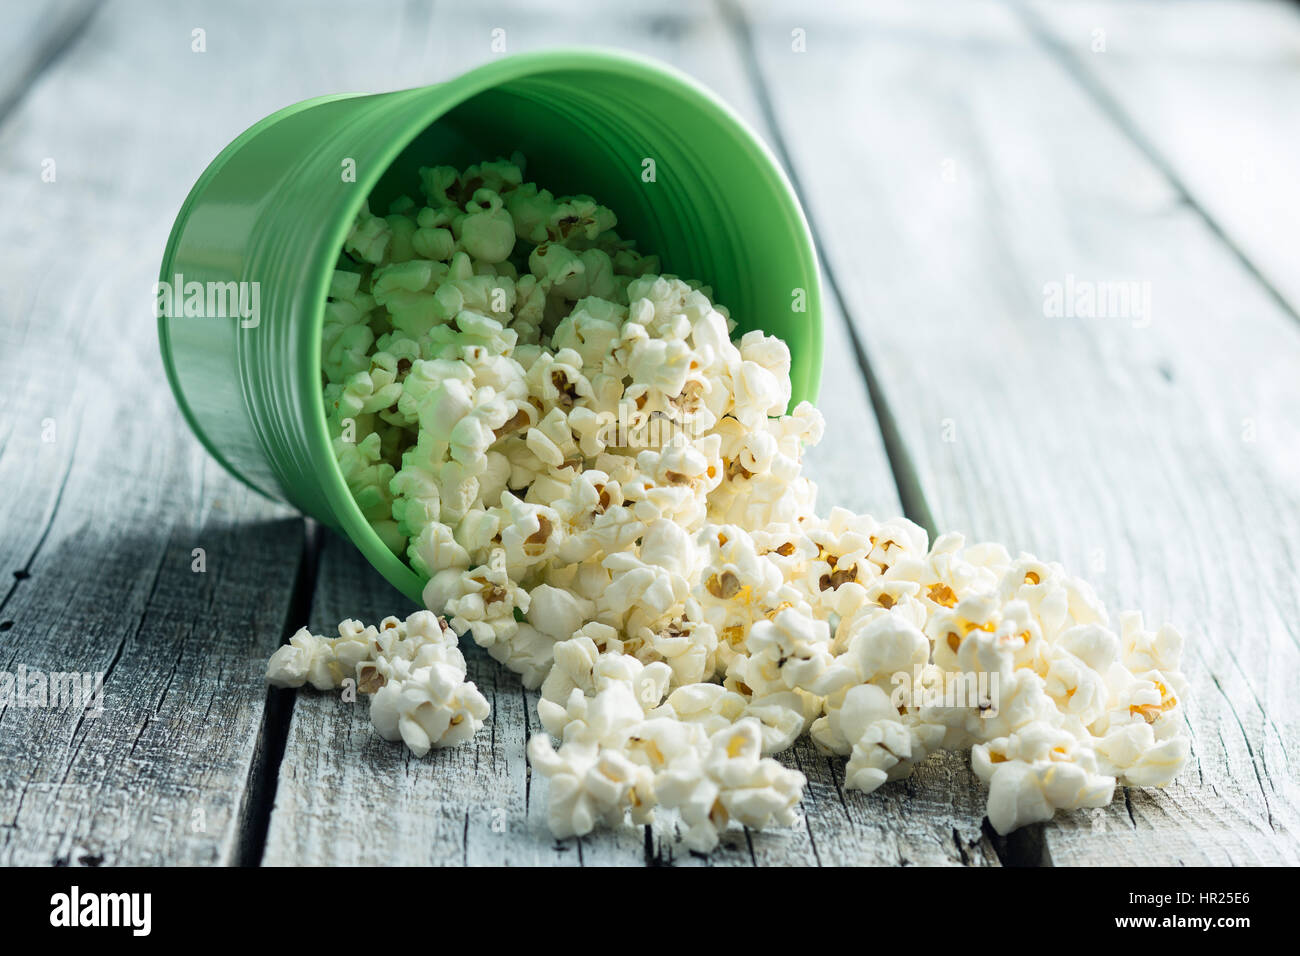 The salty popcorn on old wooden table. - Stock Image